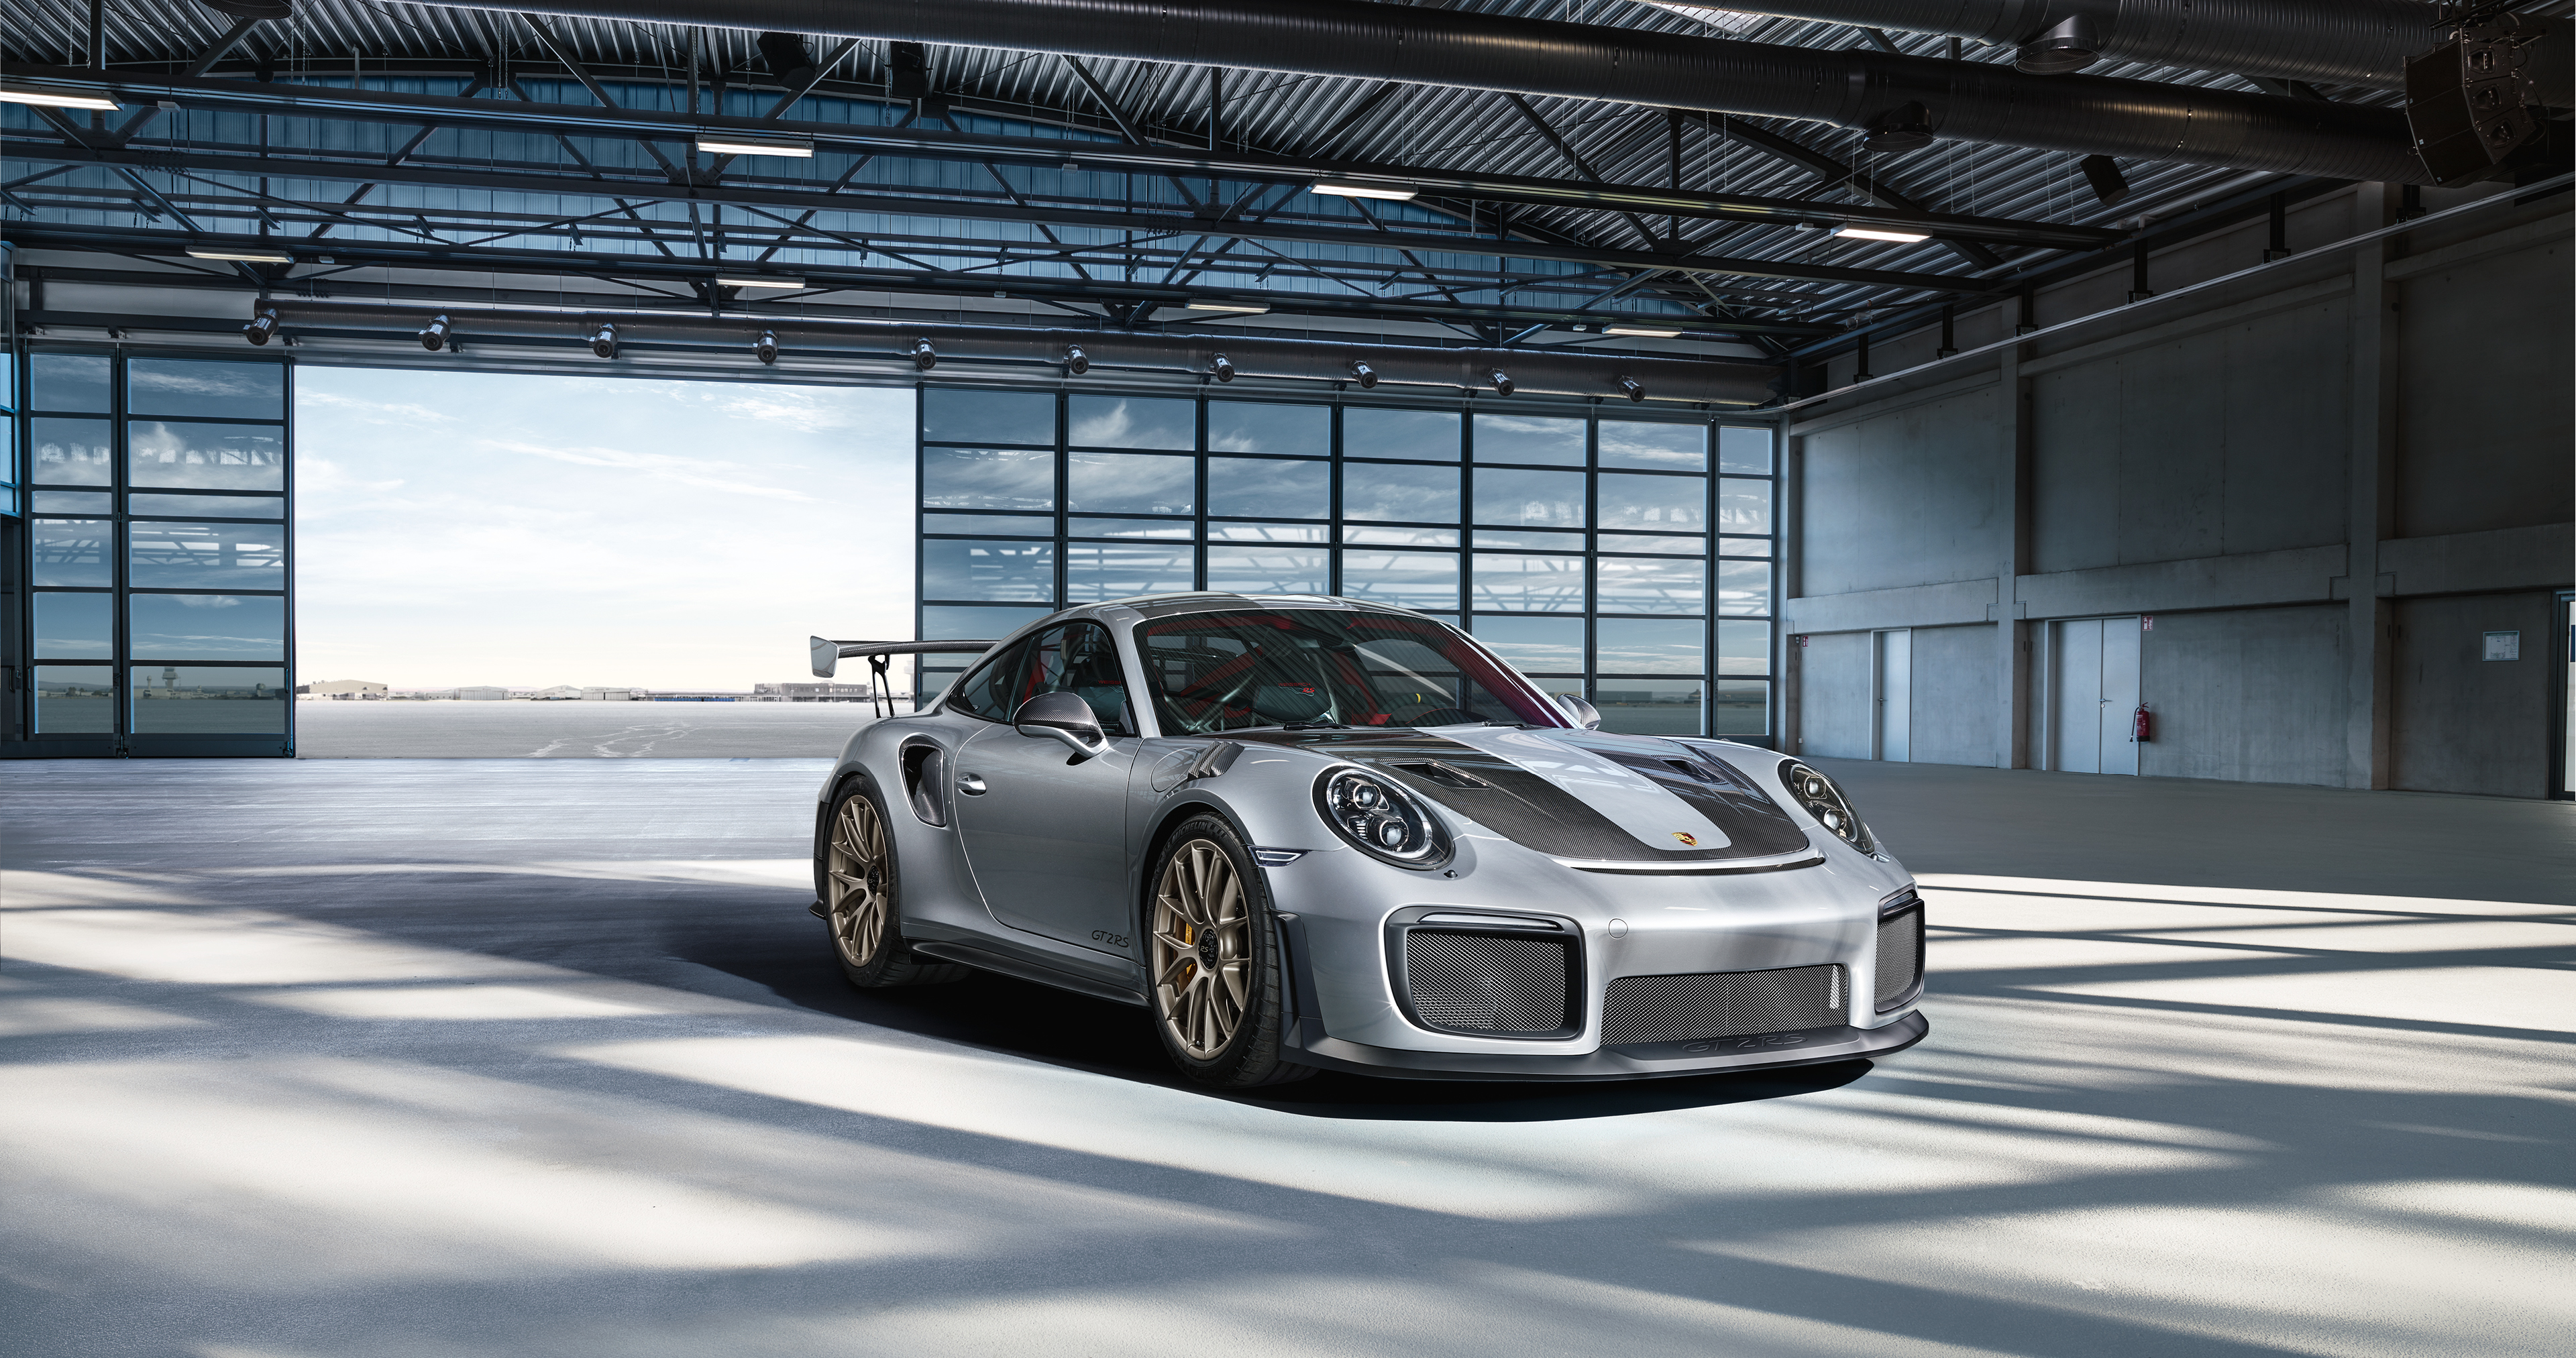 2880x1800 2019 Porsche 911 Gt2 Rs 4k Macbook Pro Retina Hd 4k Wallpapers Images Backgrounds Photos And Pictures